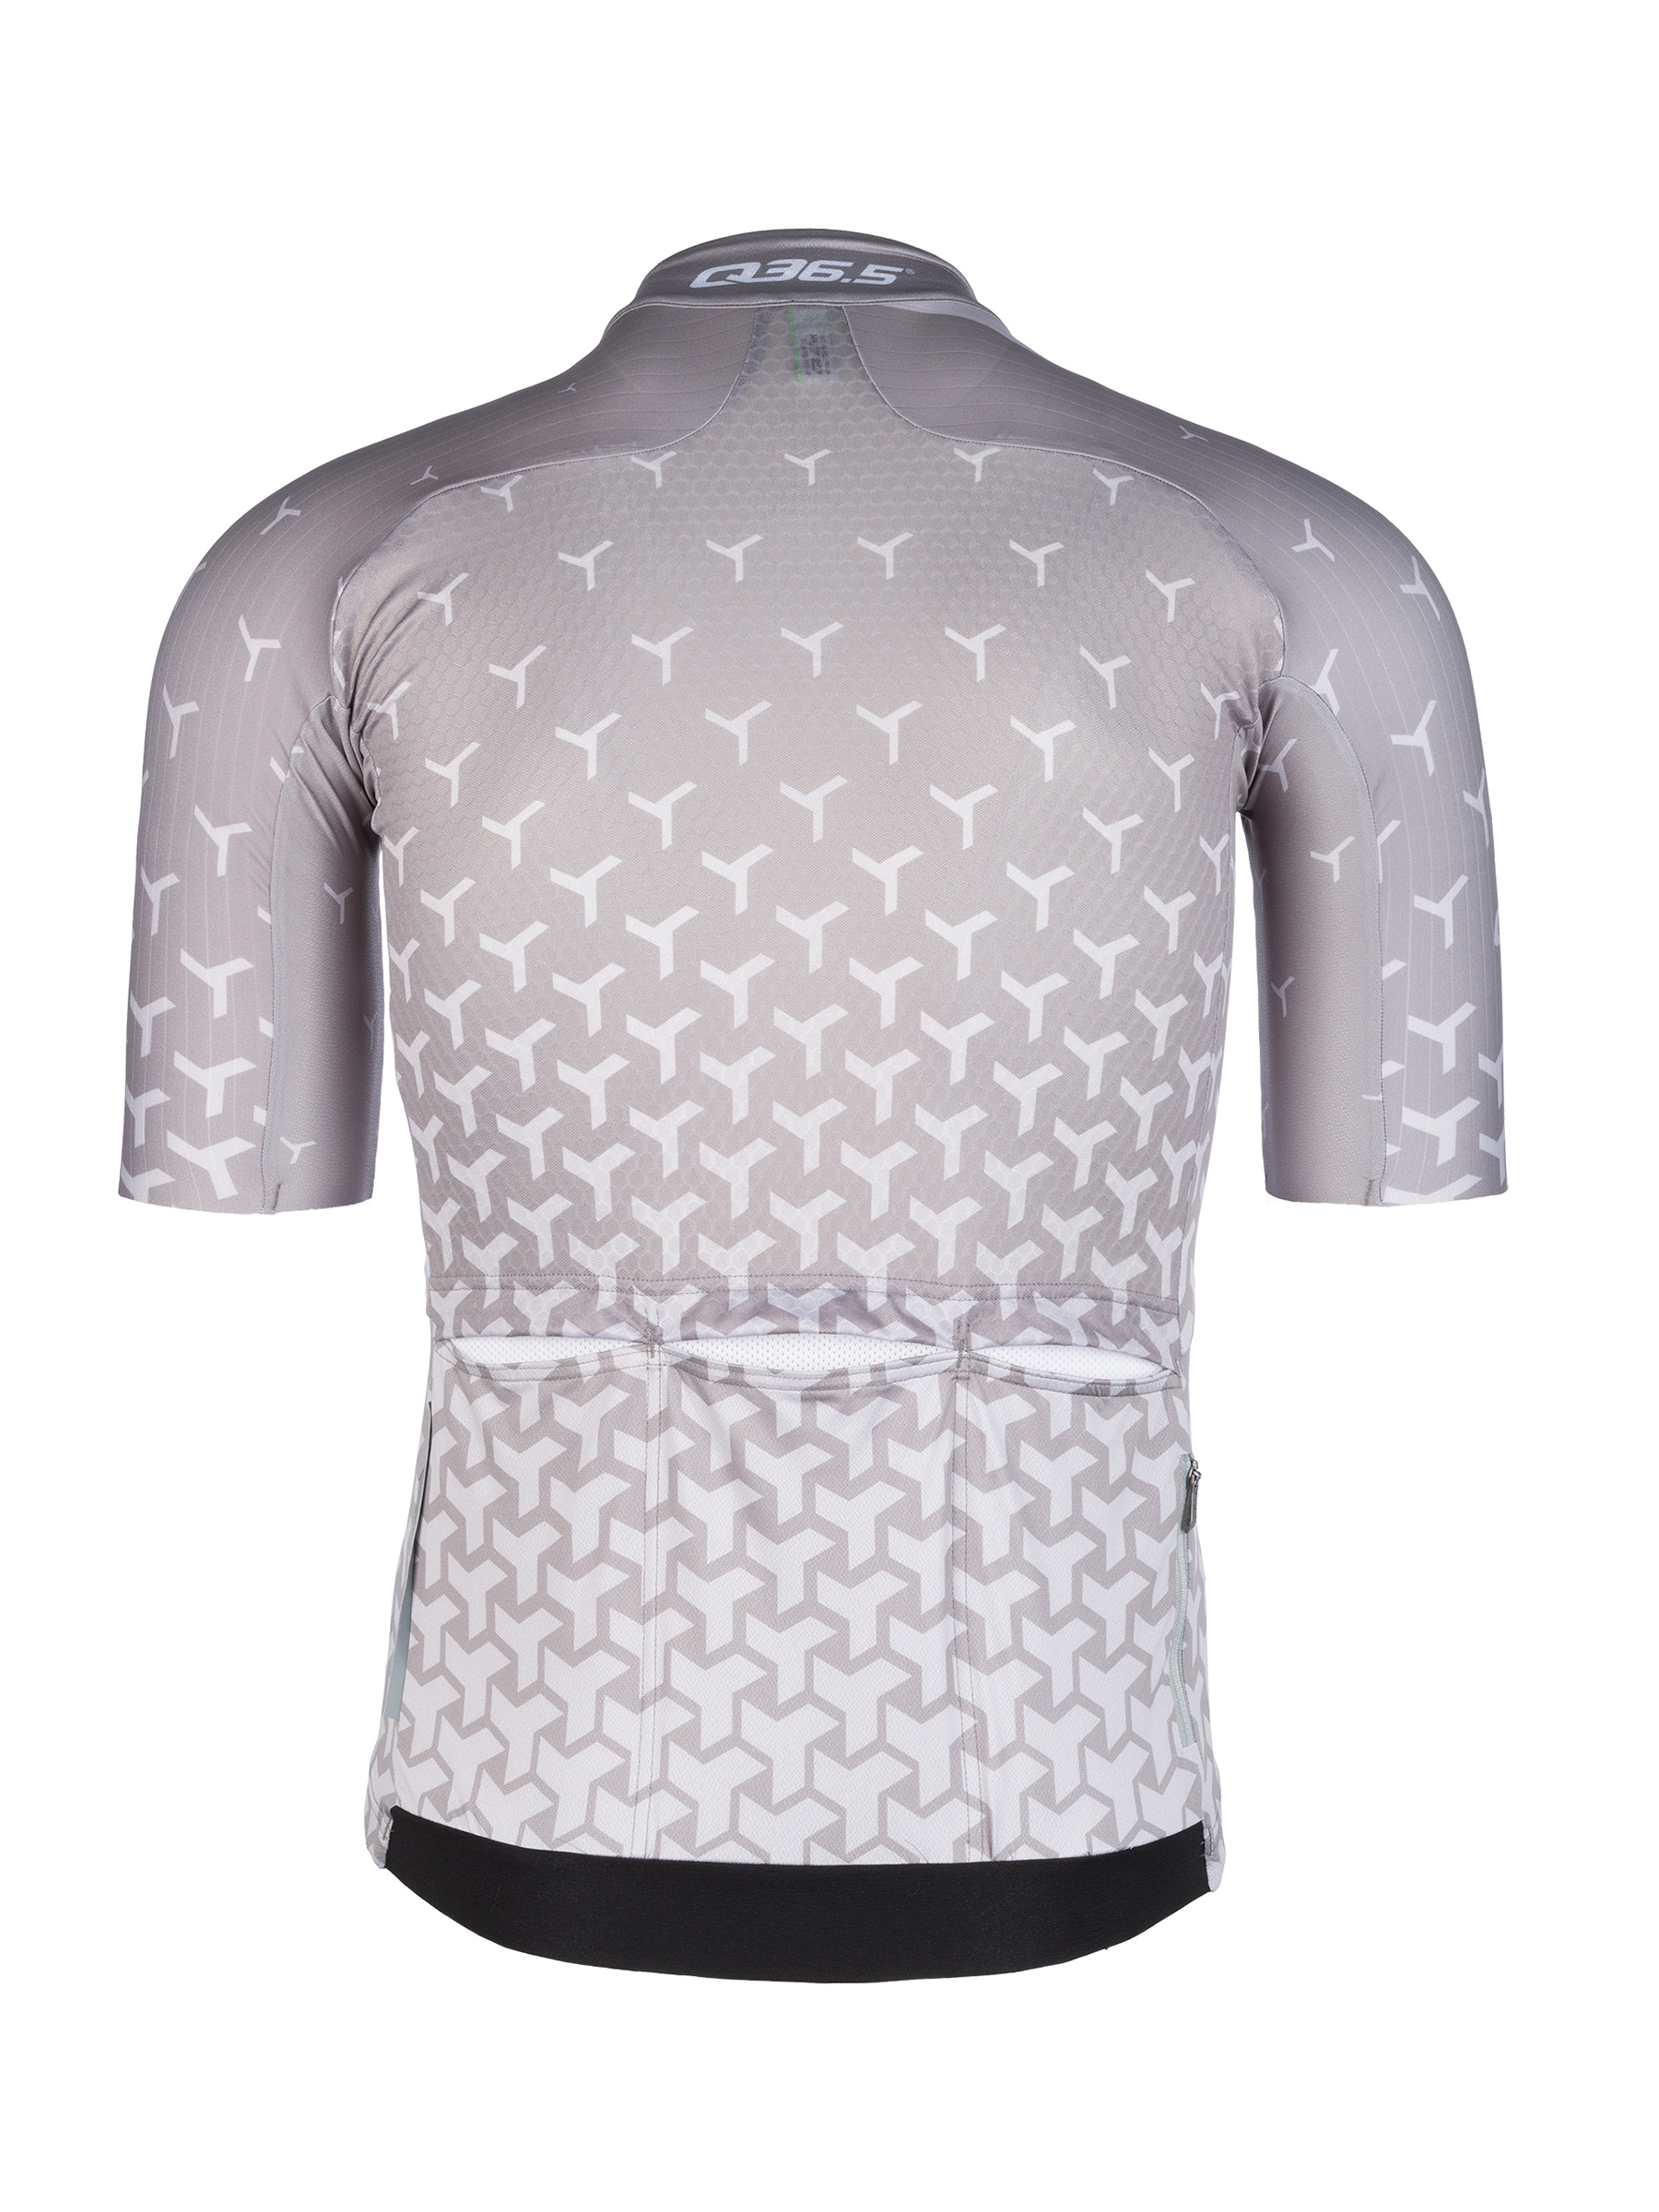 Maillot vélo manches courtes R2 Y TurtleDove